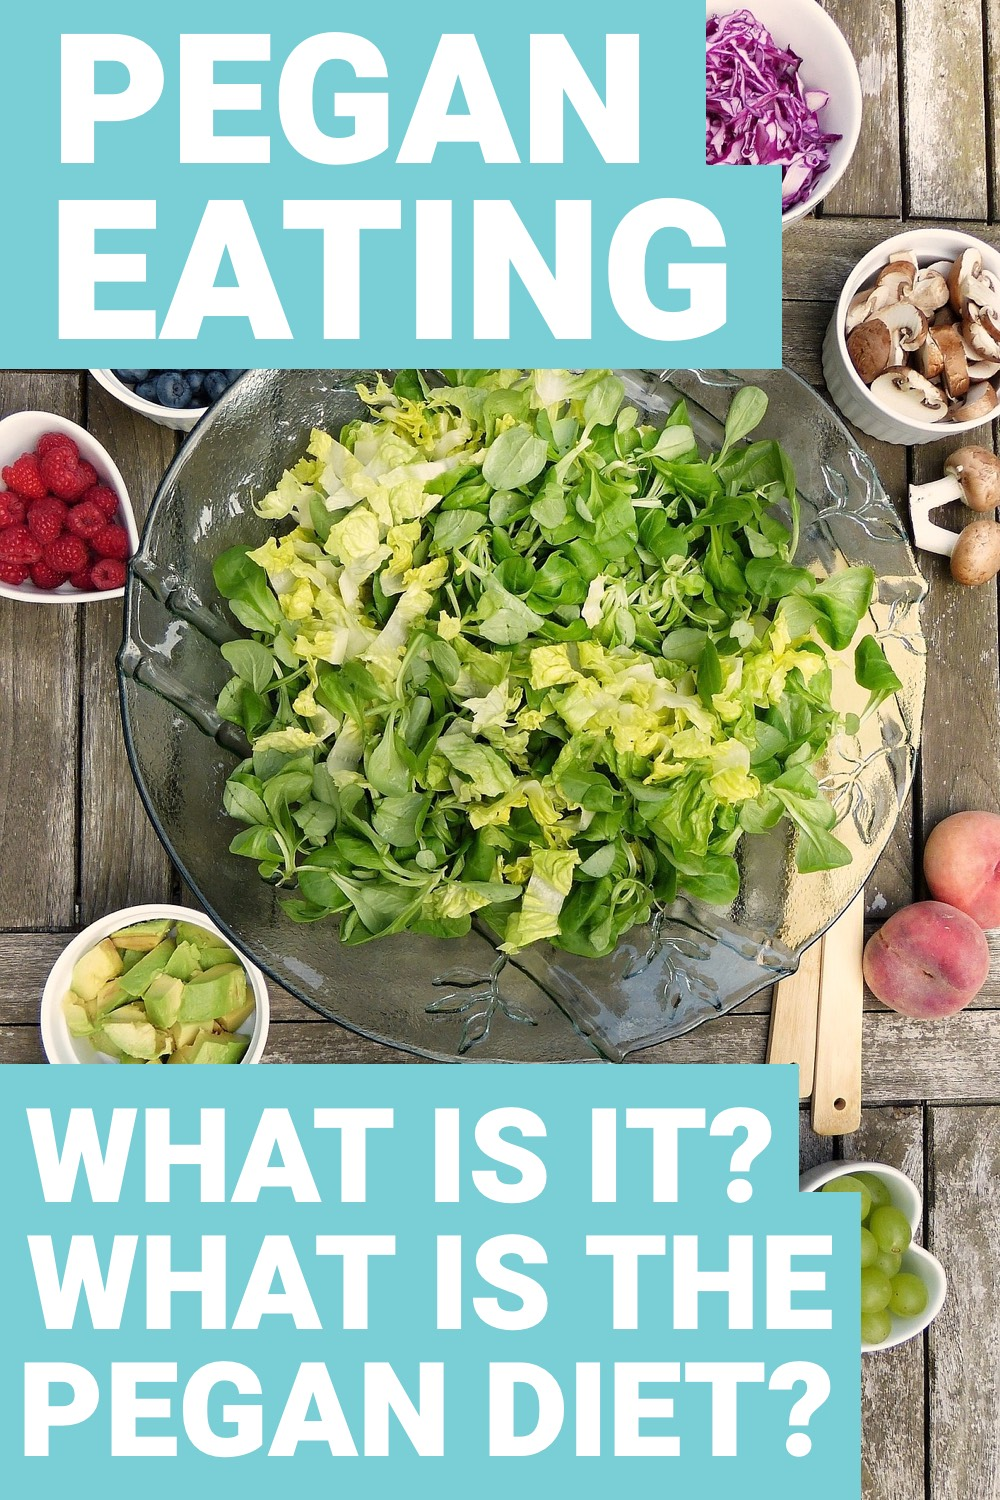 Switching to a Pegan Diet can really change your life. But what is the Pegan Diet? Find out here.